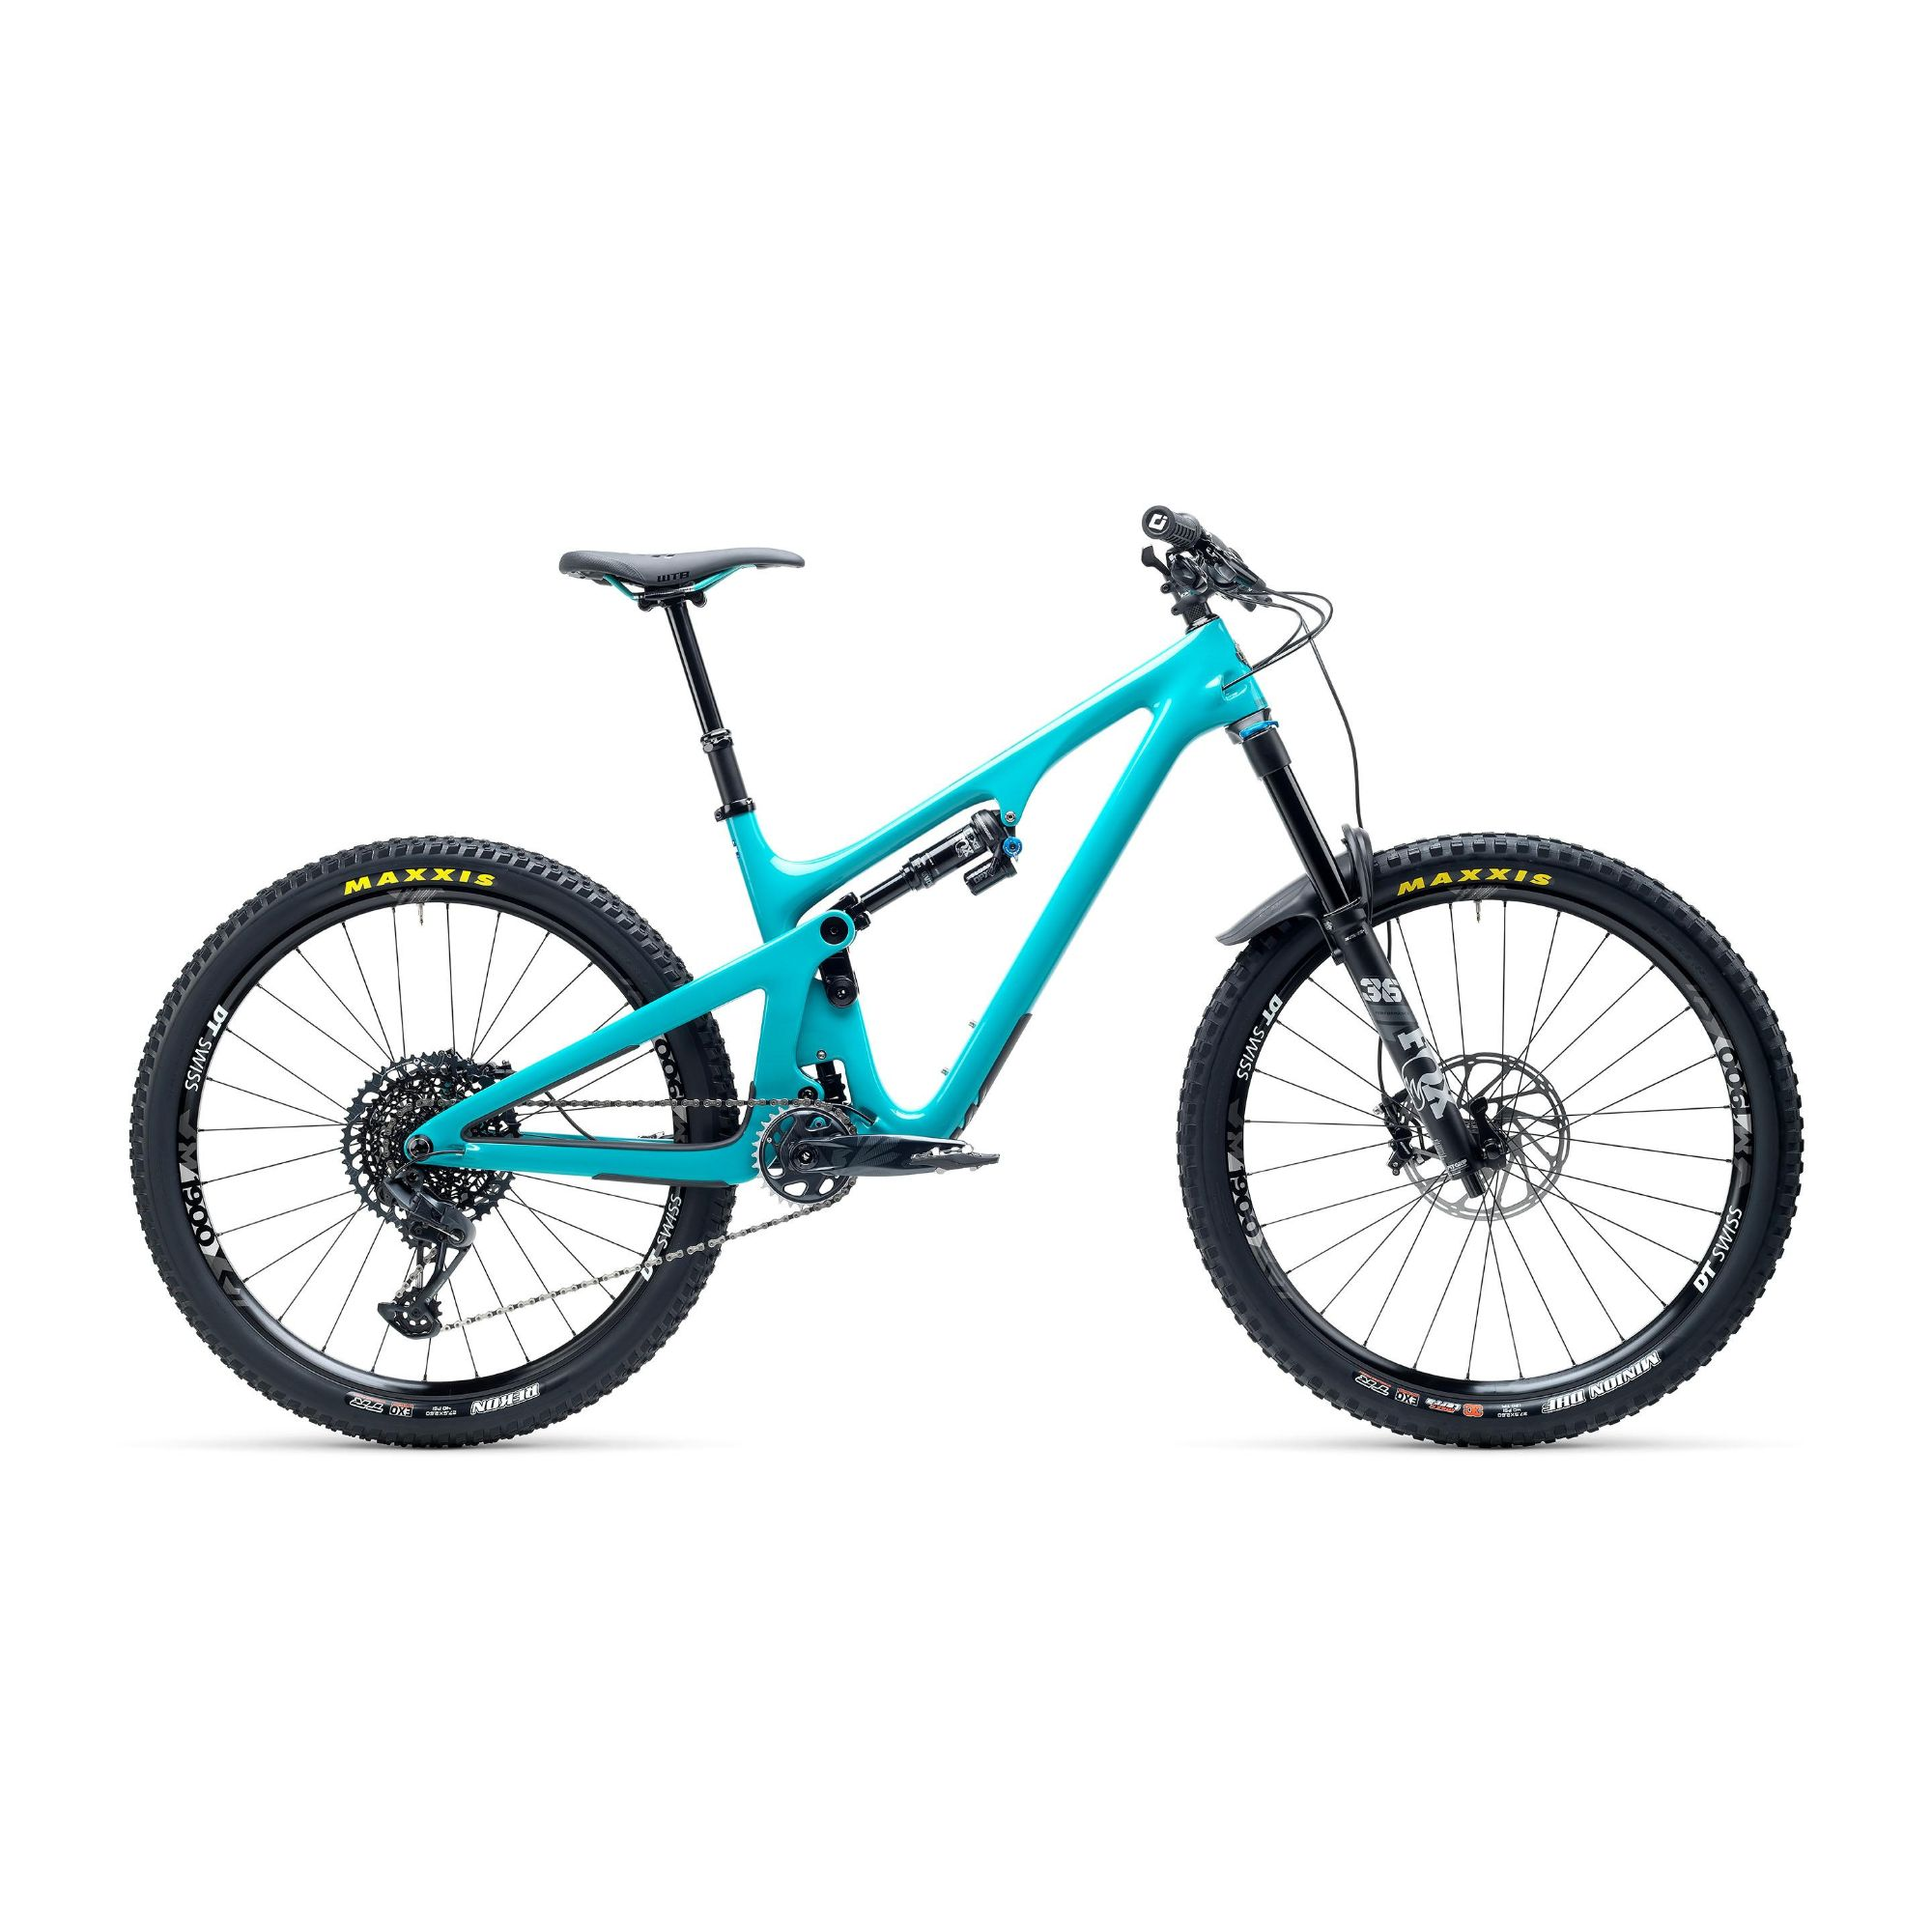 Yeti SB140 CSeries C2 GX Eagle 27.5 12spd Carbon Mountain Bike Turq